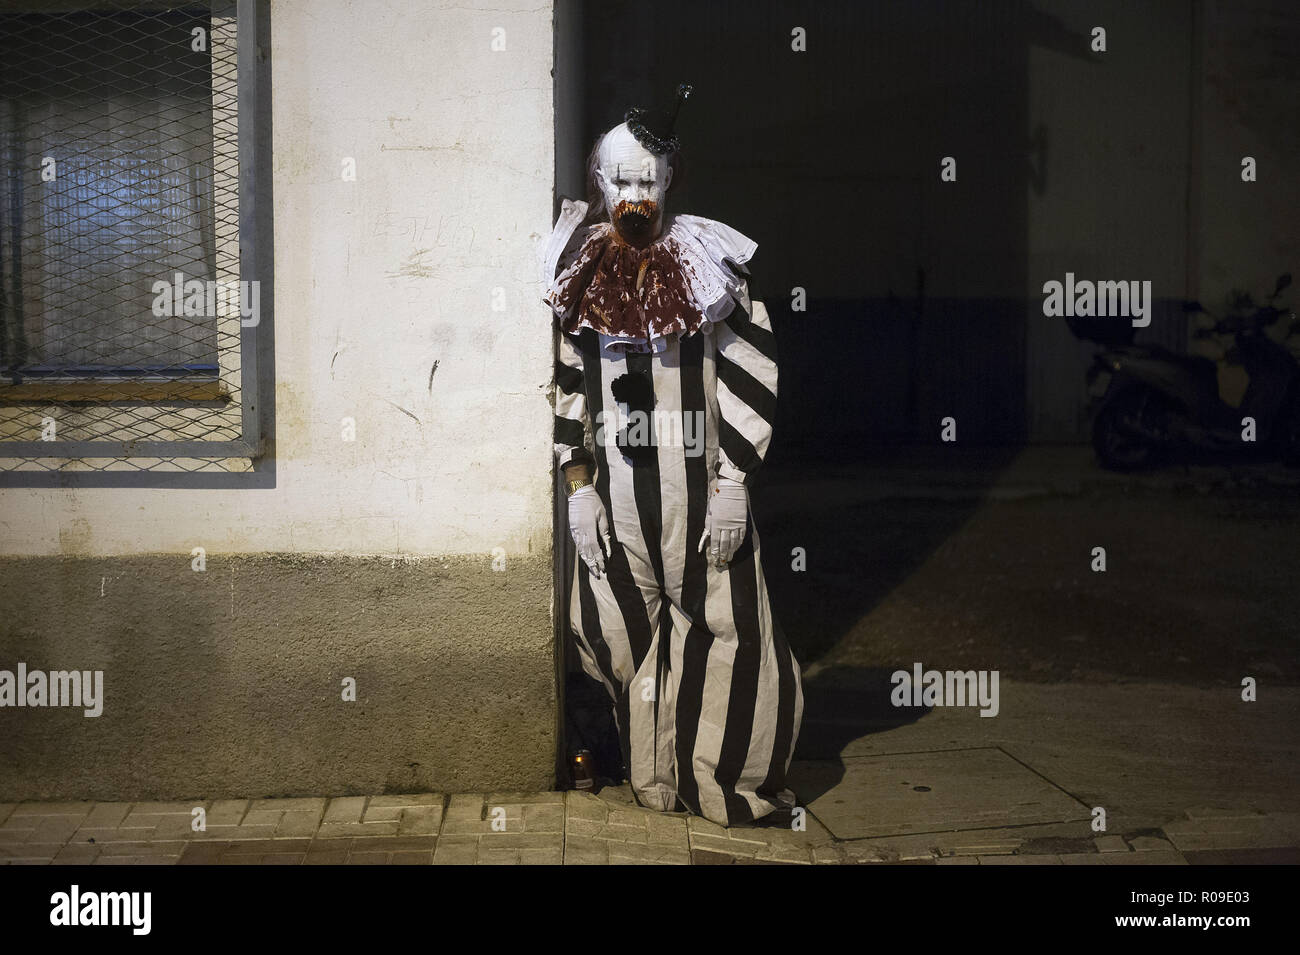 Malaga, Spain. 2nd Nov, 2018. A man dressed up as Pennywise takes part in the IV edition of ''Churriana Noche del Terror'' (Churriana Horror Night) to celebrates the Halloween night in the neighborhood of Churriana. For this occasion, the neighborhood of Churriana decided to move the event to this night because of rainy forecast during the night of 31 october, the Hallowen Day. Credit: Jesus Merida/SOPA Images/ZUMA Wire/Alamy Live News - Stock Image